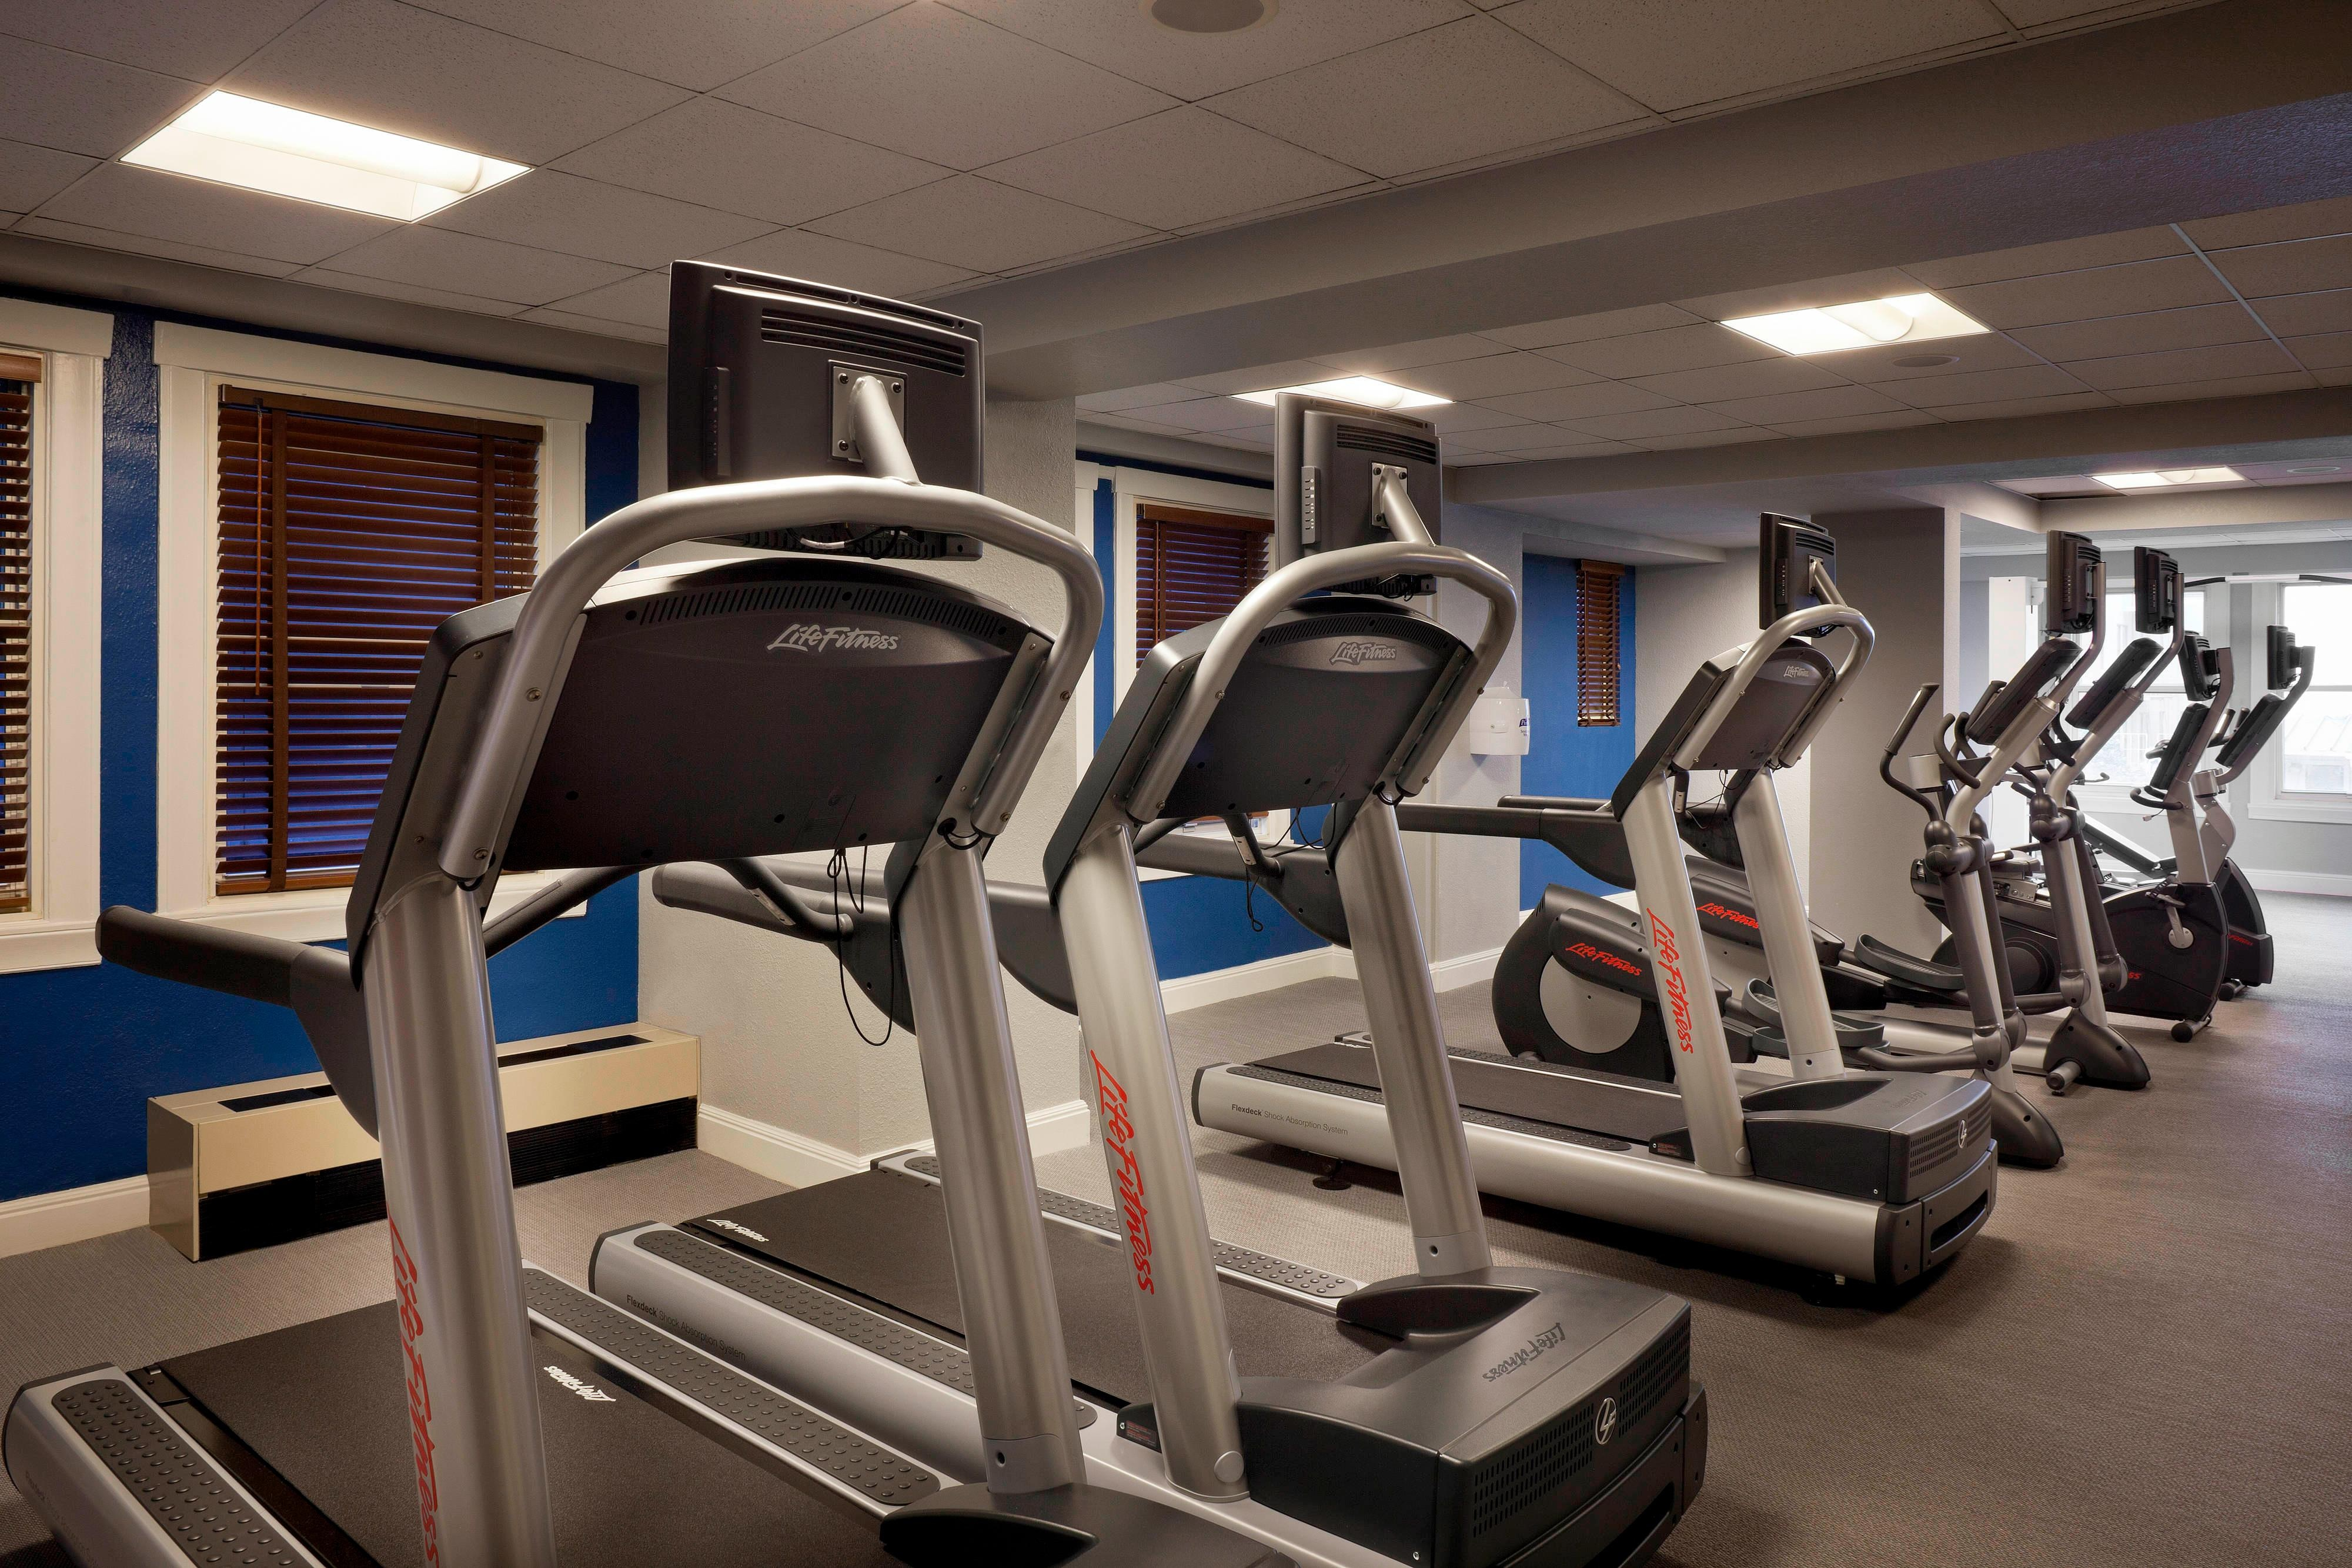 San Francisco hotel with fitness center